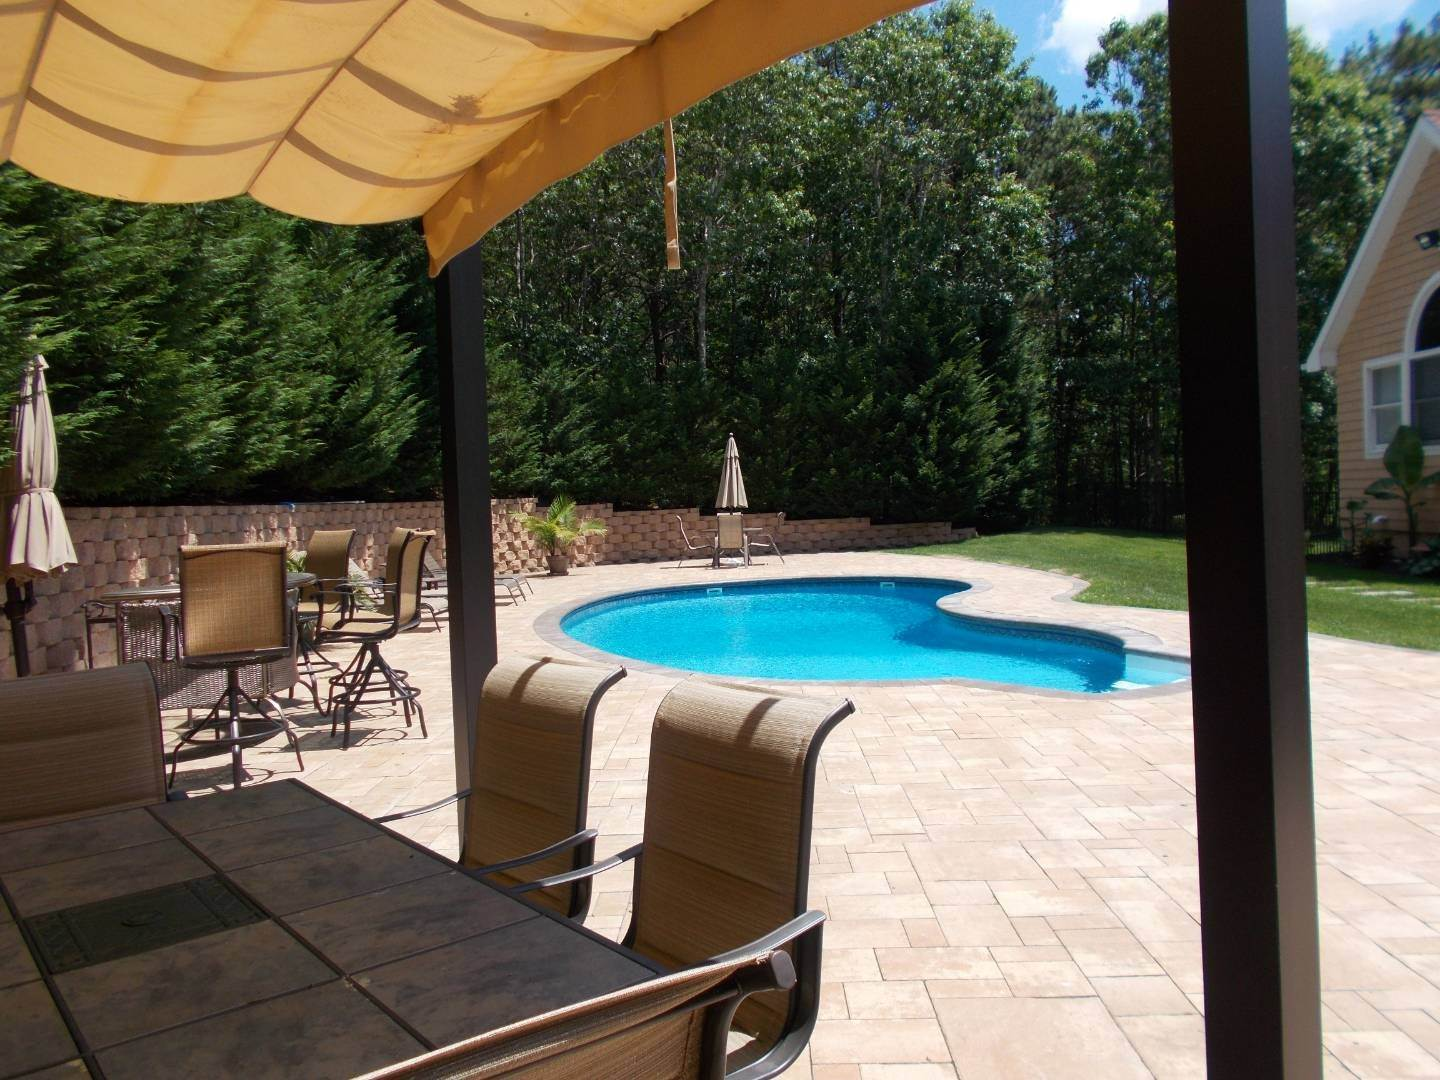 4. Single Family Home at Upscale Home In The Pines With Inground Heated Pool East Quogue, NY 11942